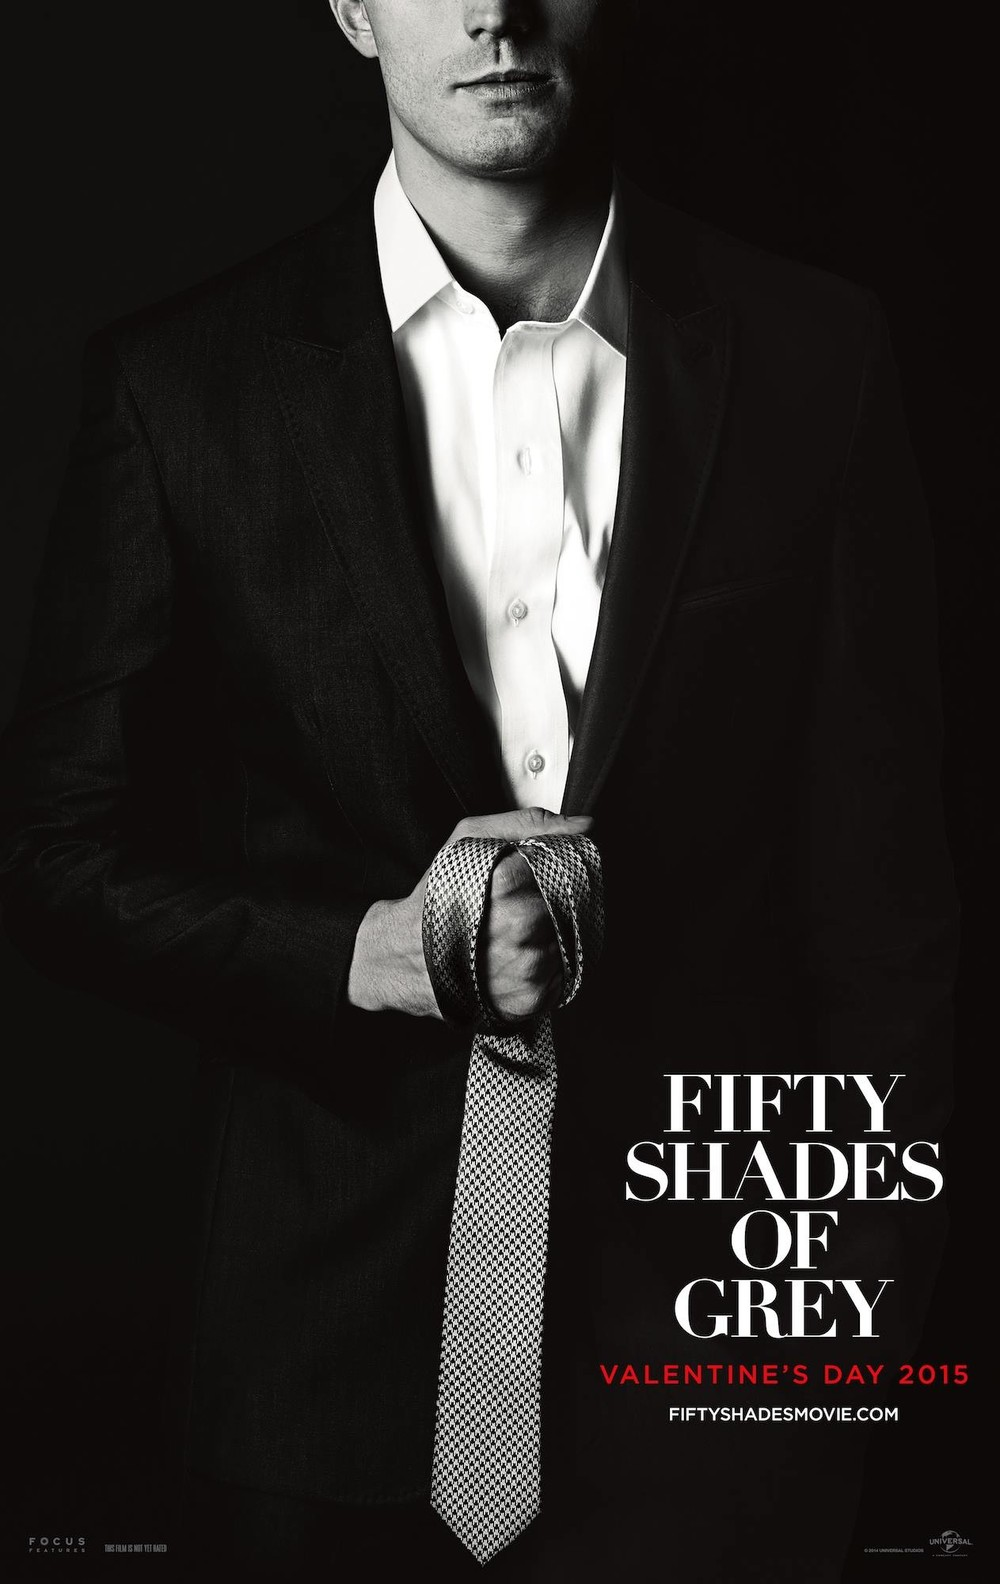 Fifty Shades Of Grey Movie Release Date Images & Pictures - Becuo